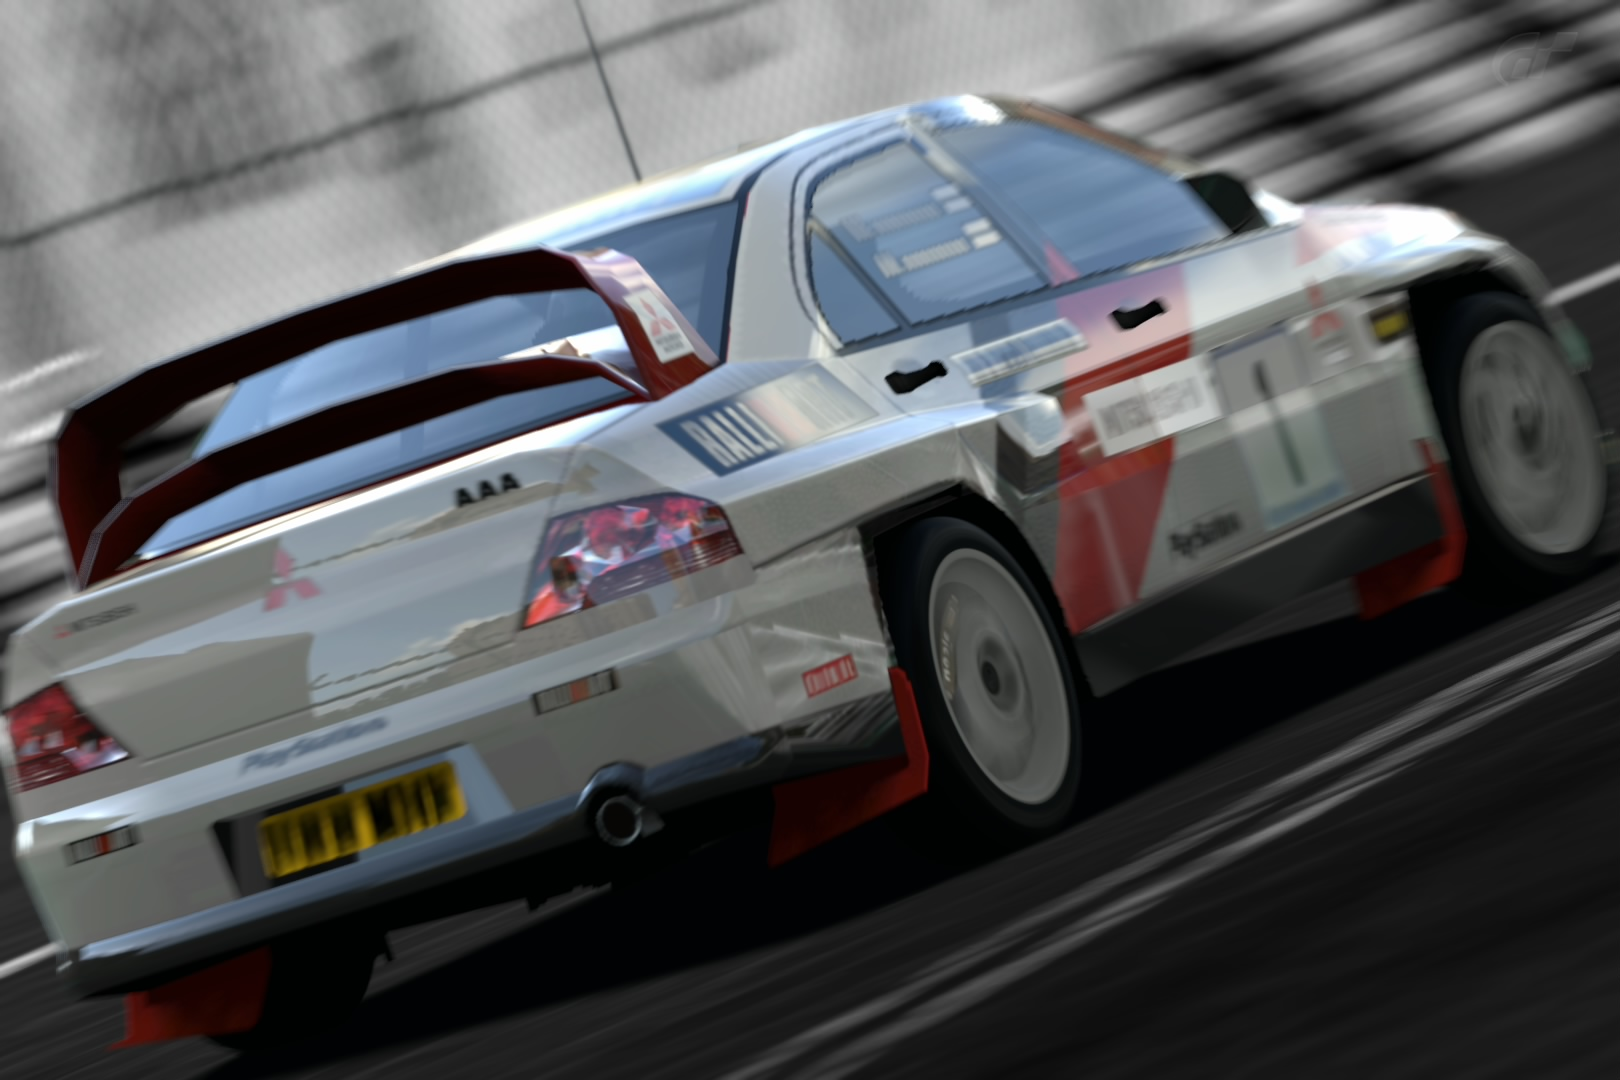 Mitsubishi Lancer Evolution WRC - by Riki